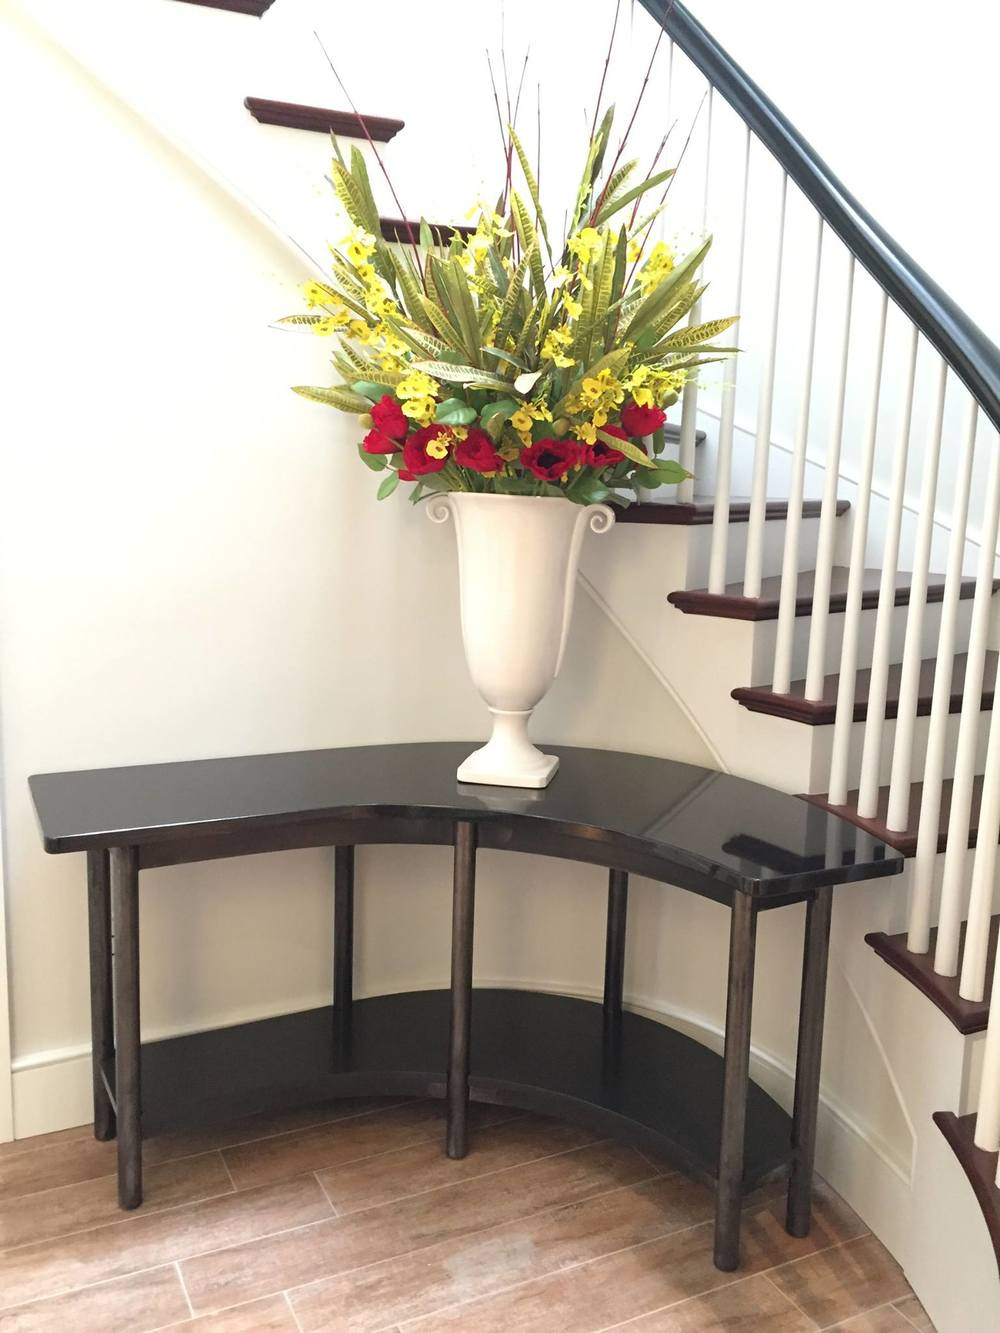 Custom Table with Wood & Granite Tops